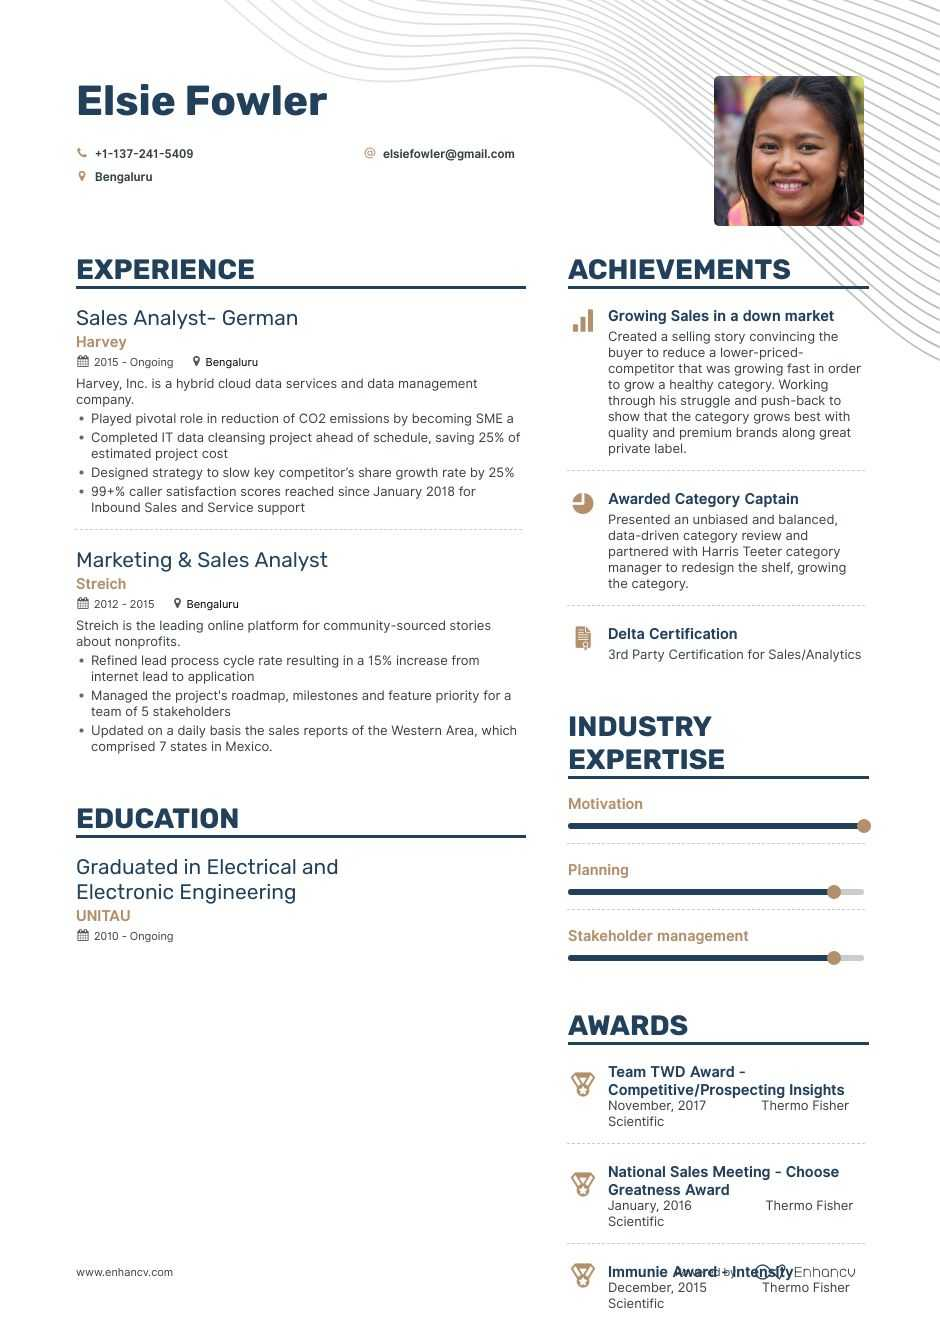 top analyst resume examples samples for enhancv perfect example make on phone free sample Resume Perfect Resume Example 2020